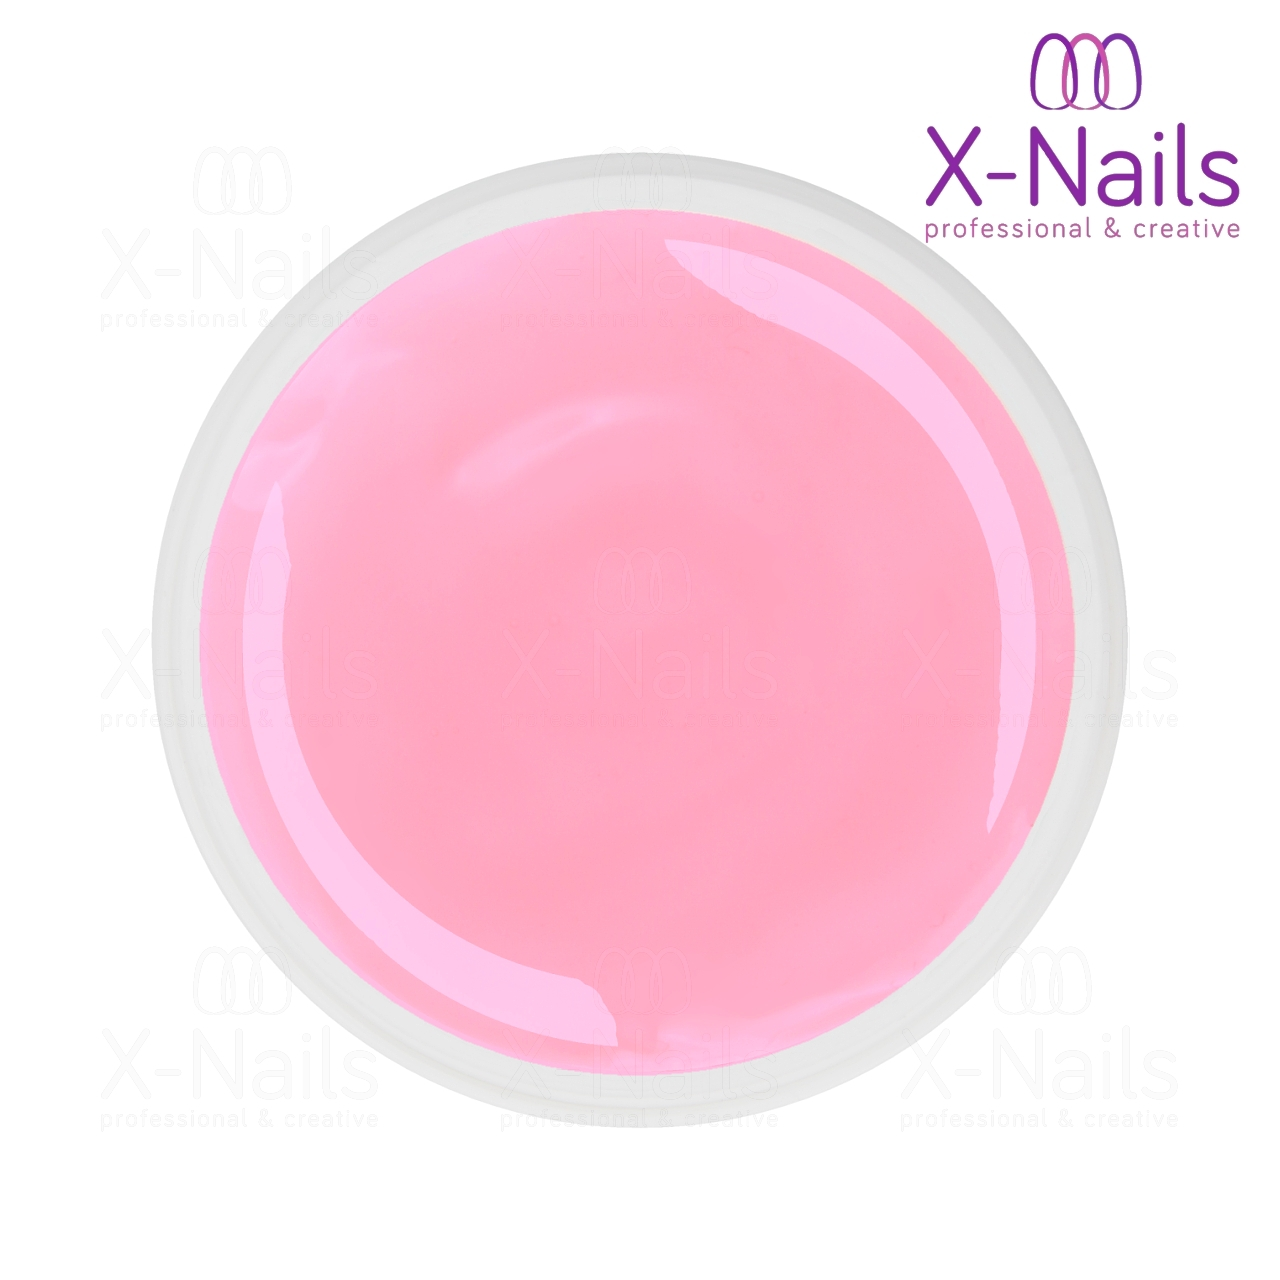 X-NAILS UV Classic Line Akrygel, 15 ml - ACRYGEL COVER PINK